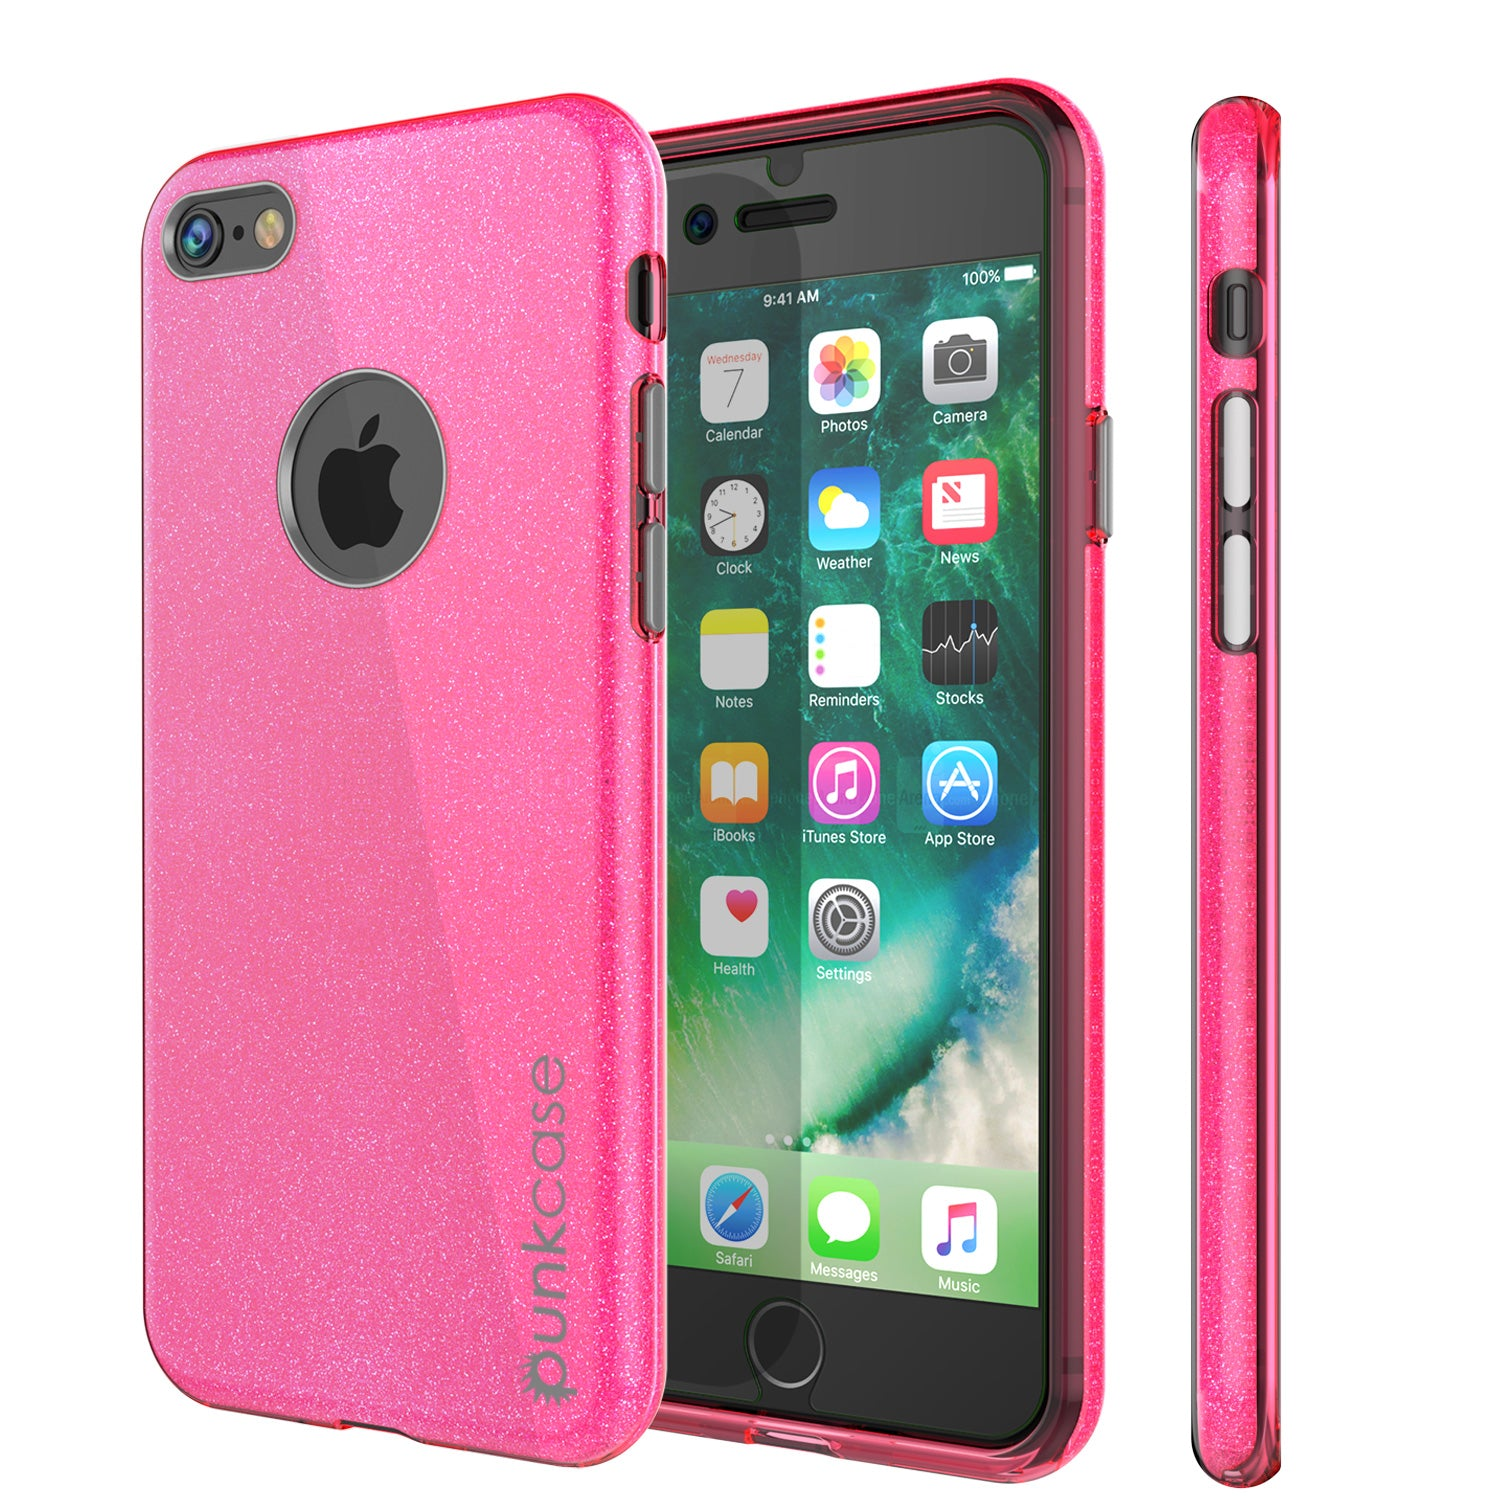 iPhone 8 Case, Punkcase Galactic 2.0 Series Ultra Slim Protective Armor TPU Cover [Pink]